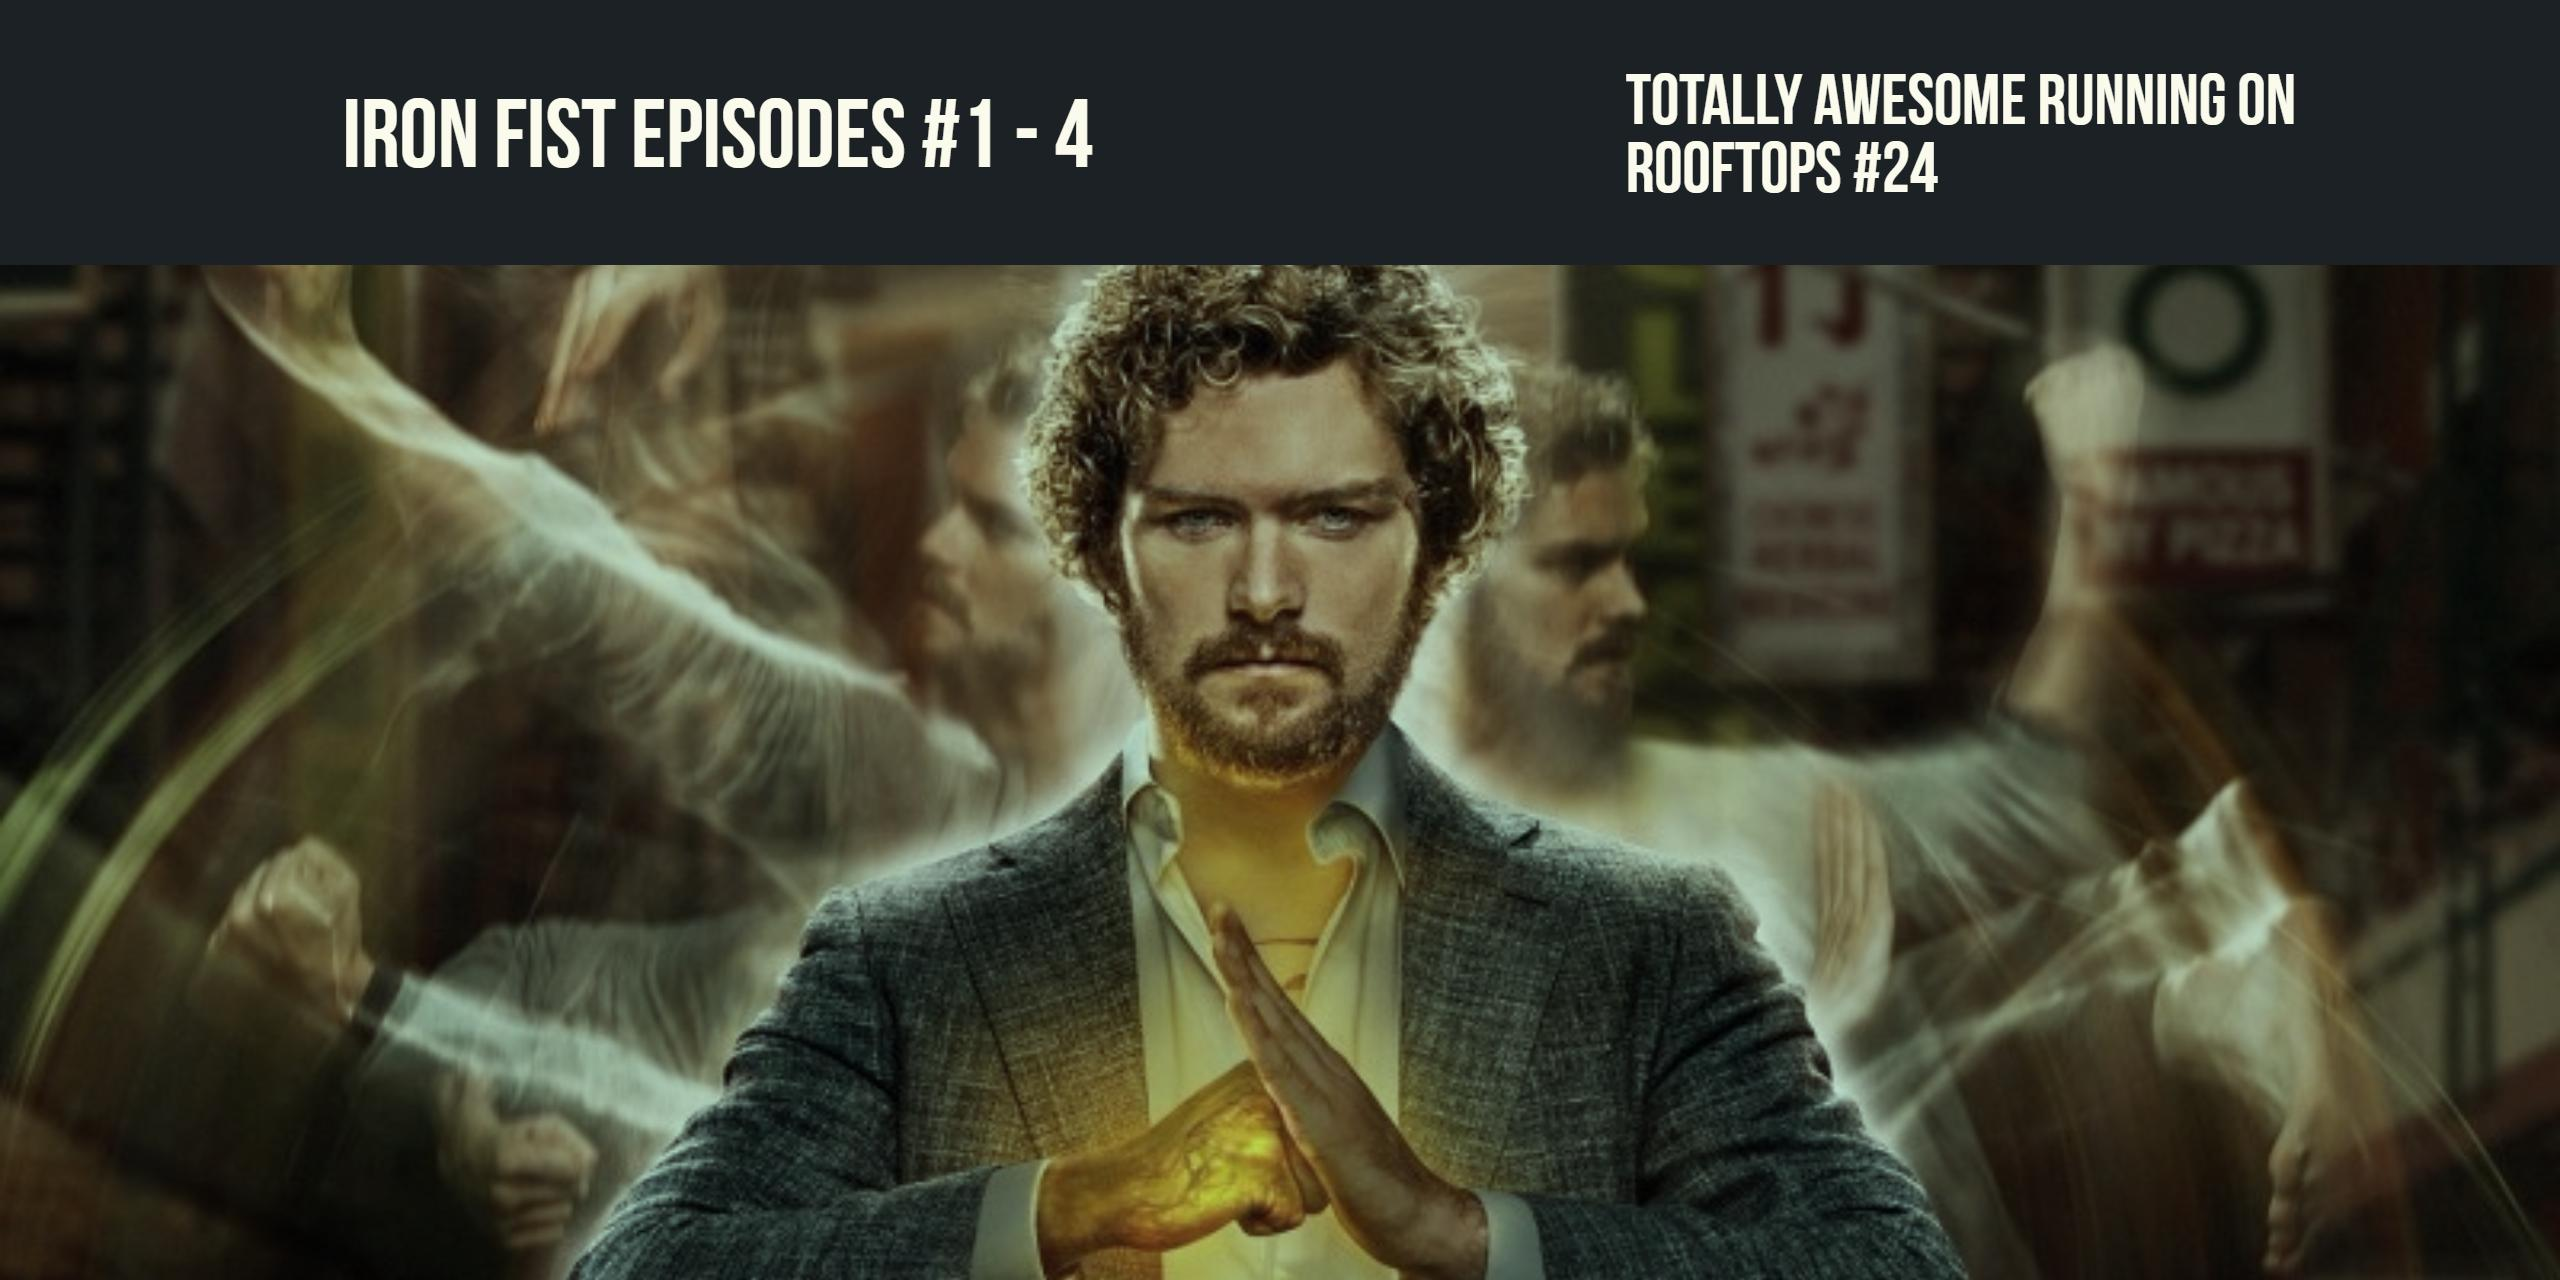 Iron Fist Spoiler Free Review